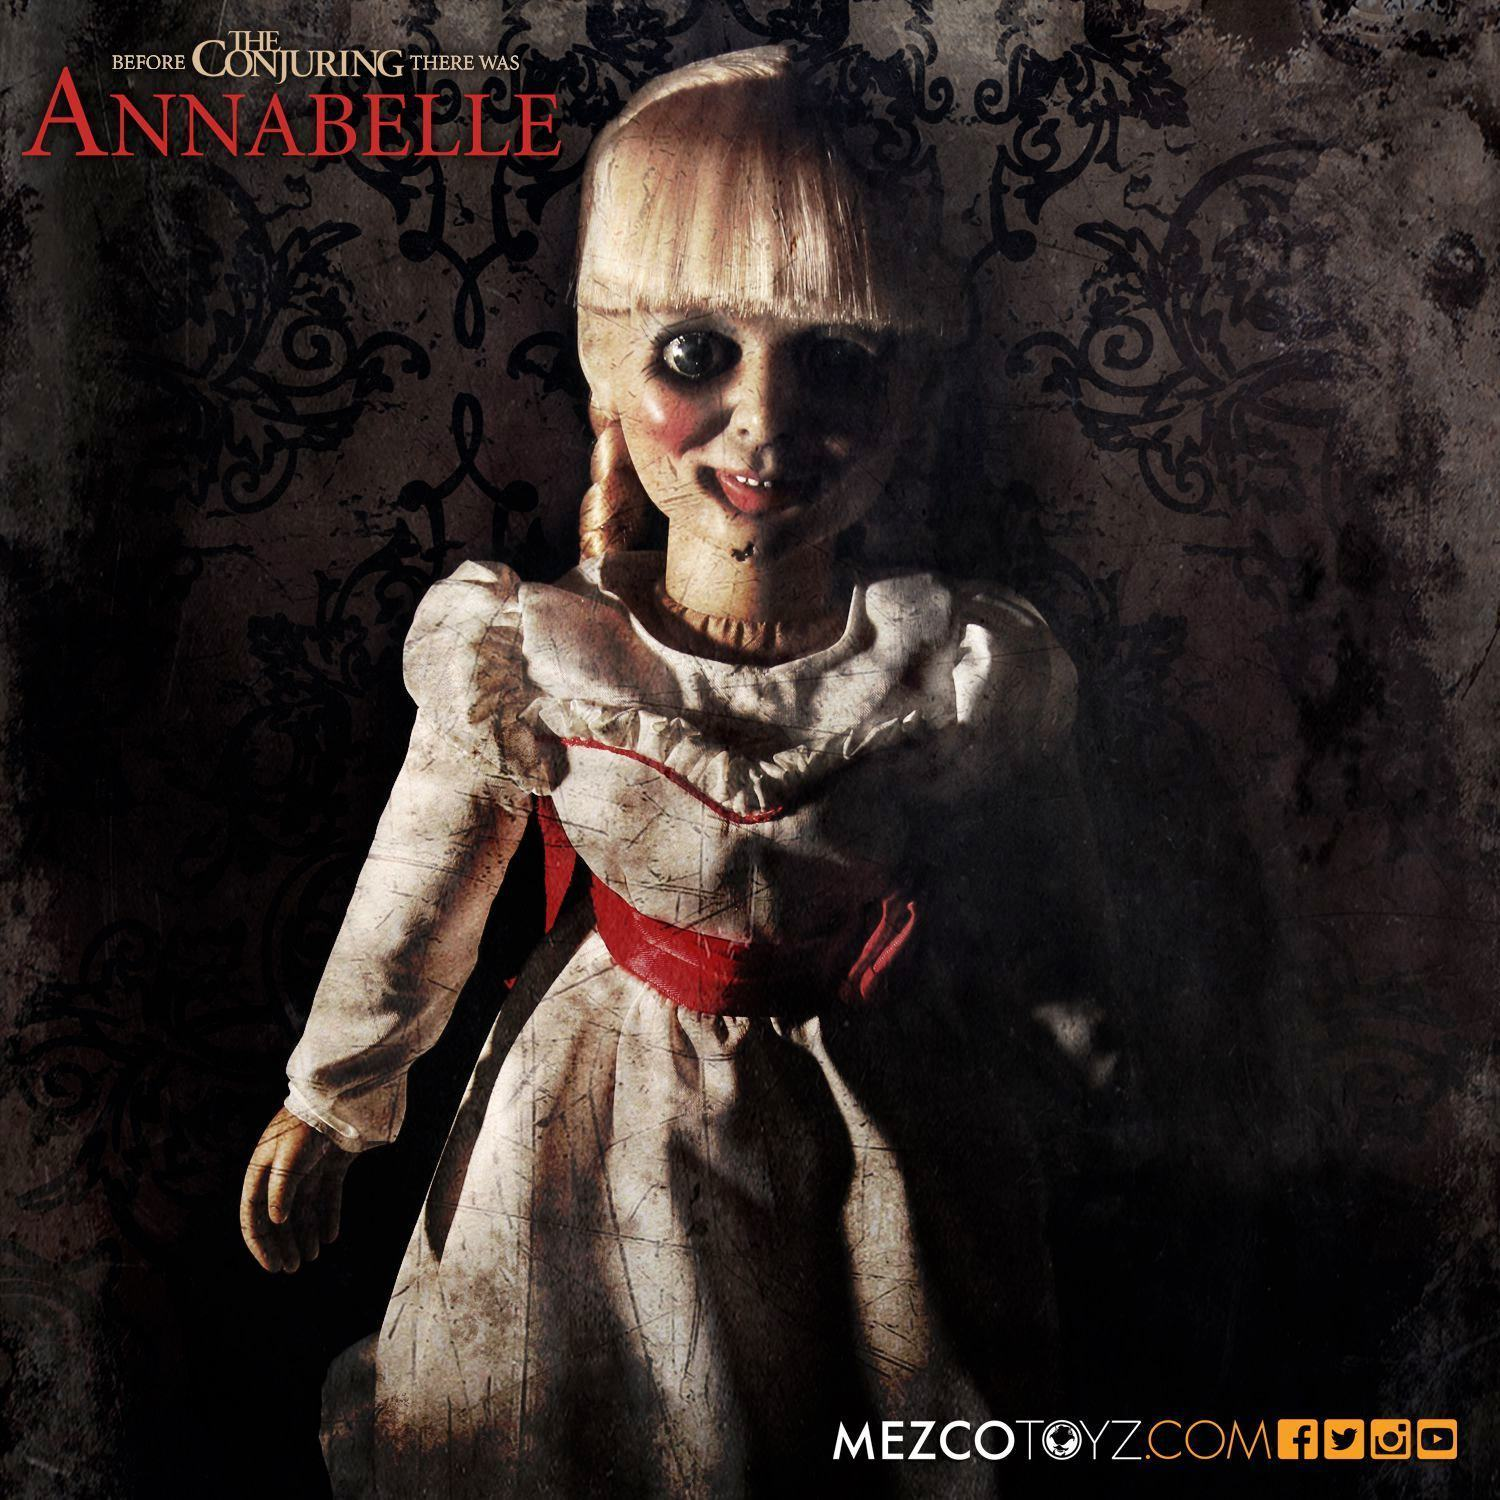 Boneca-Assombrada-Annabelle-Doll-Scaled-Prop-Replica-02